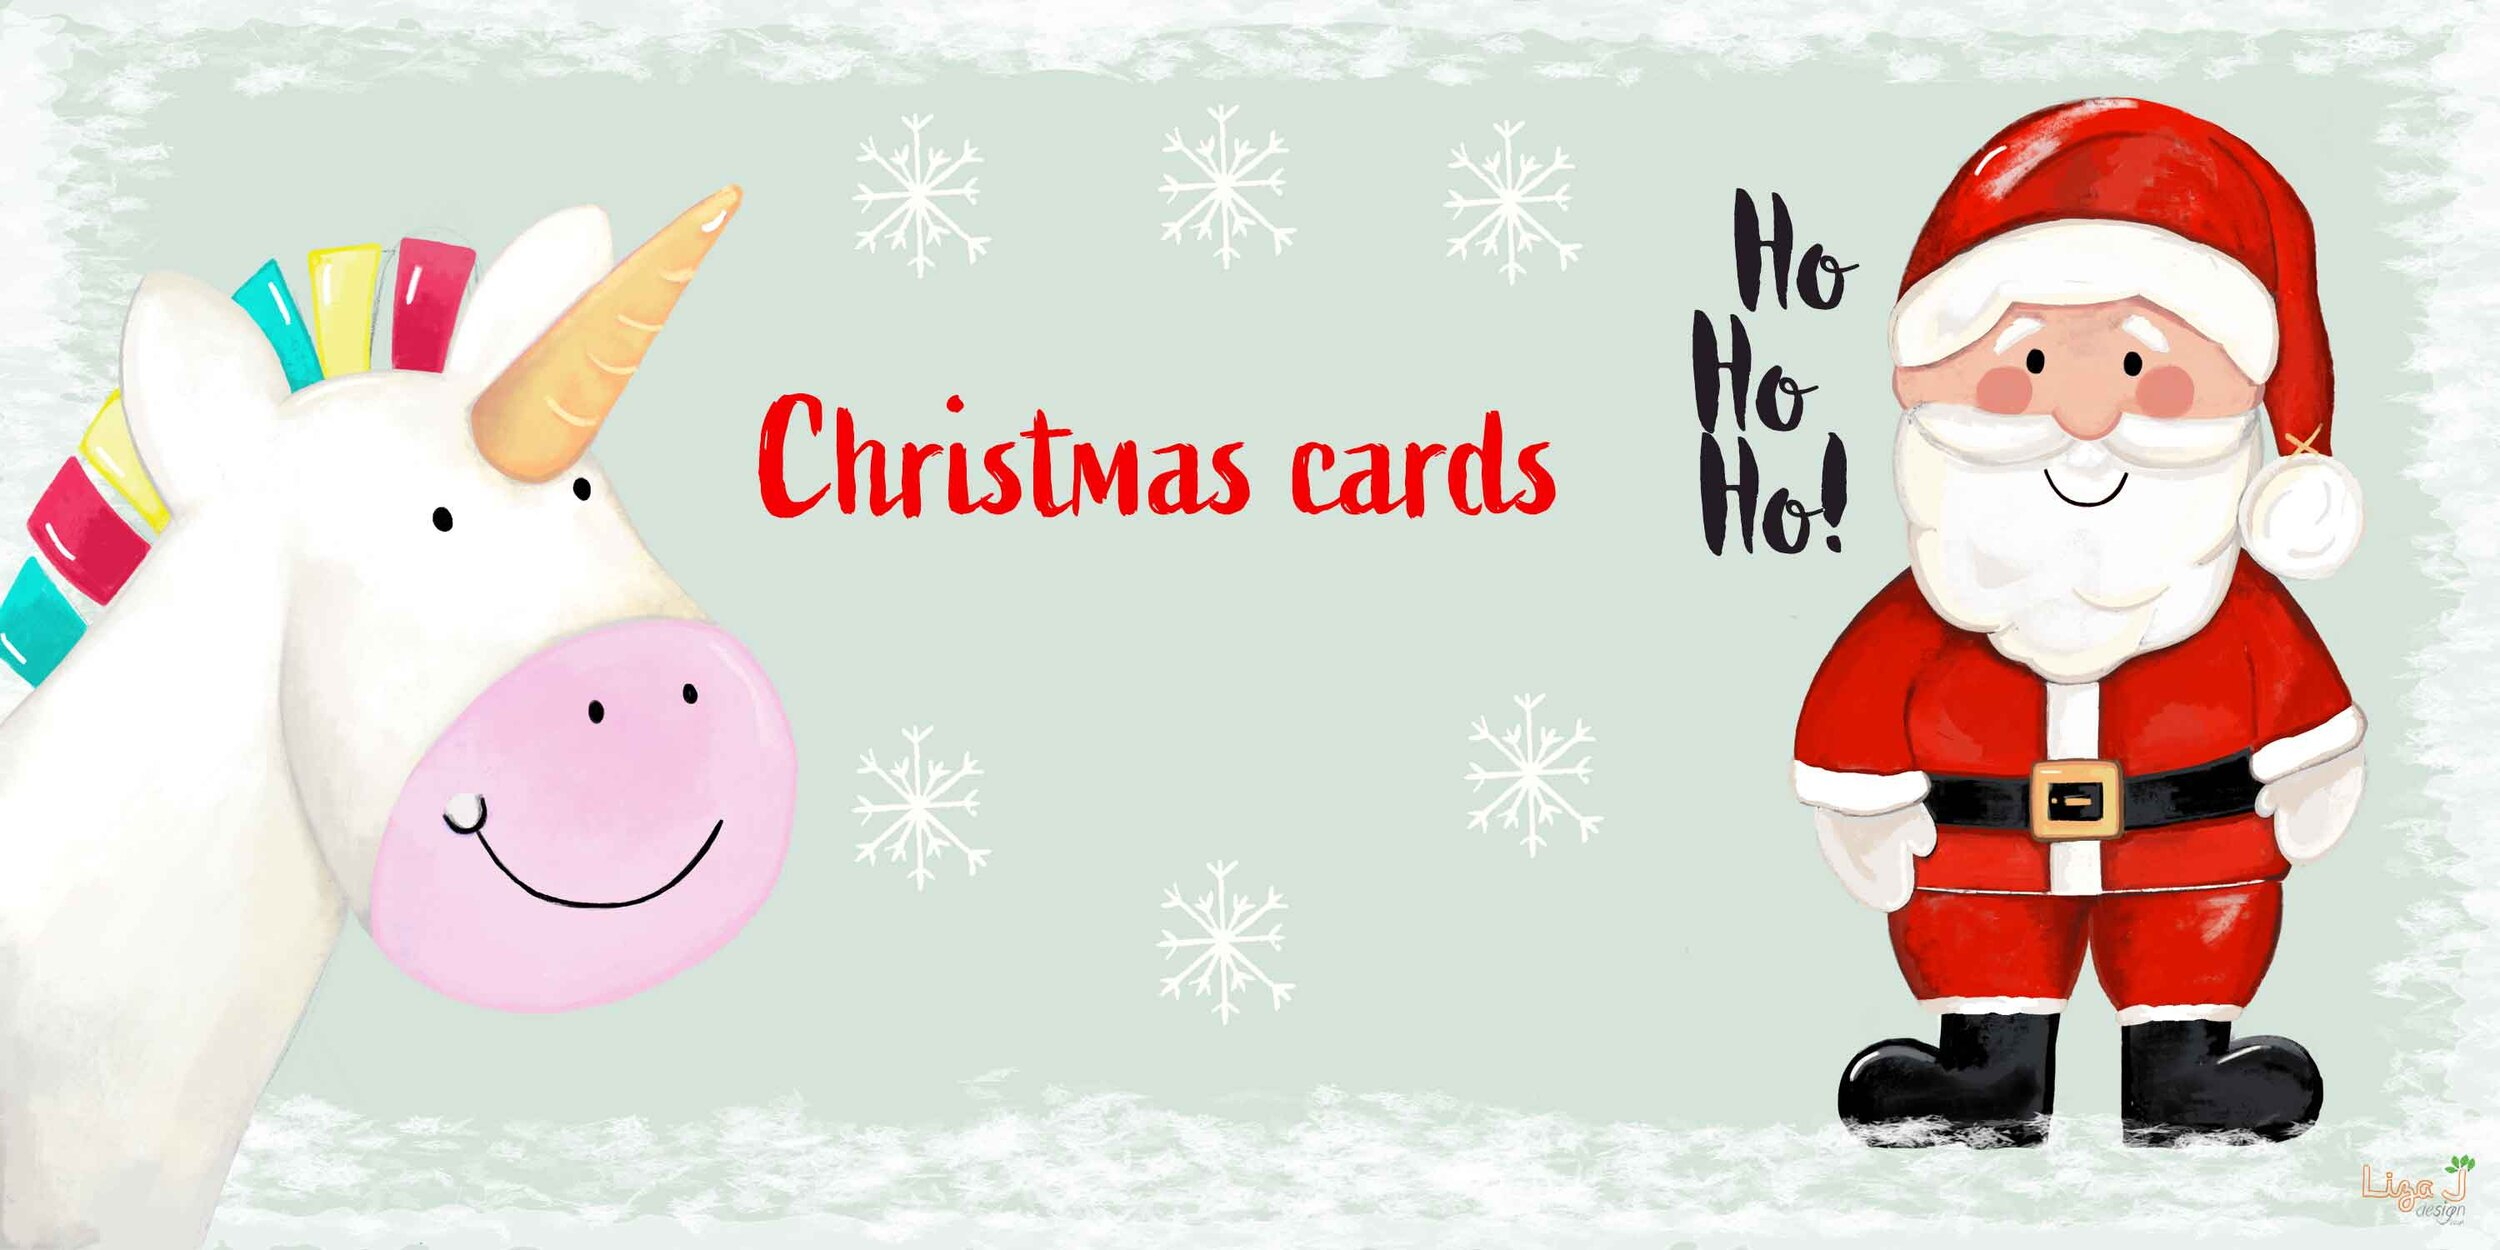 Christmas Cards - Personalised Christmas cards for all the family.Cute cheerful designs from Santas to unicorns.Shop online for FREE delivery.